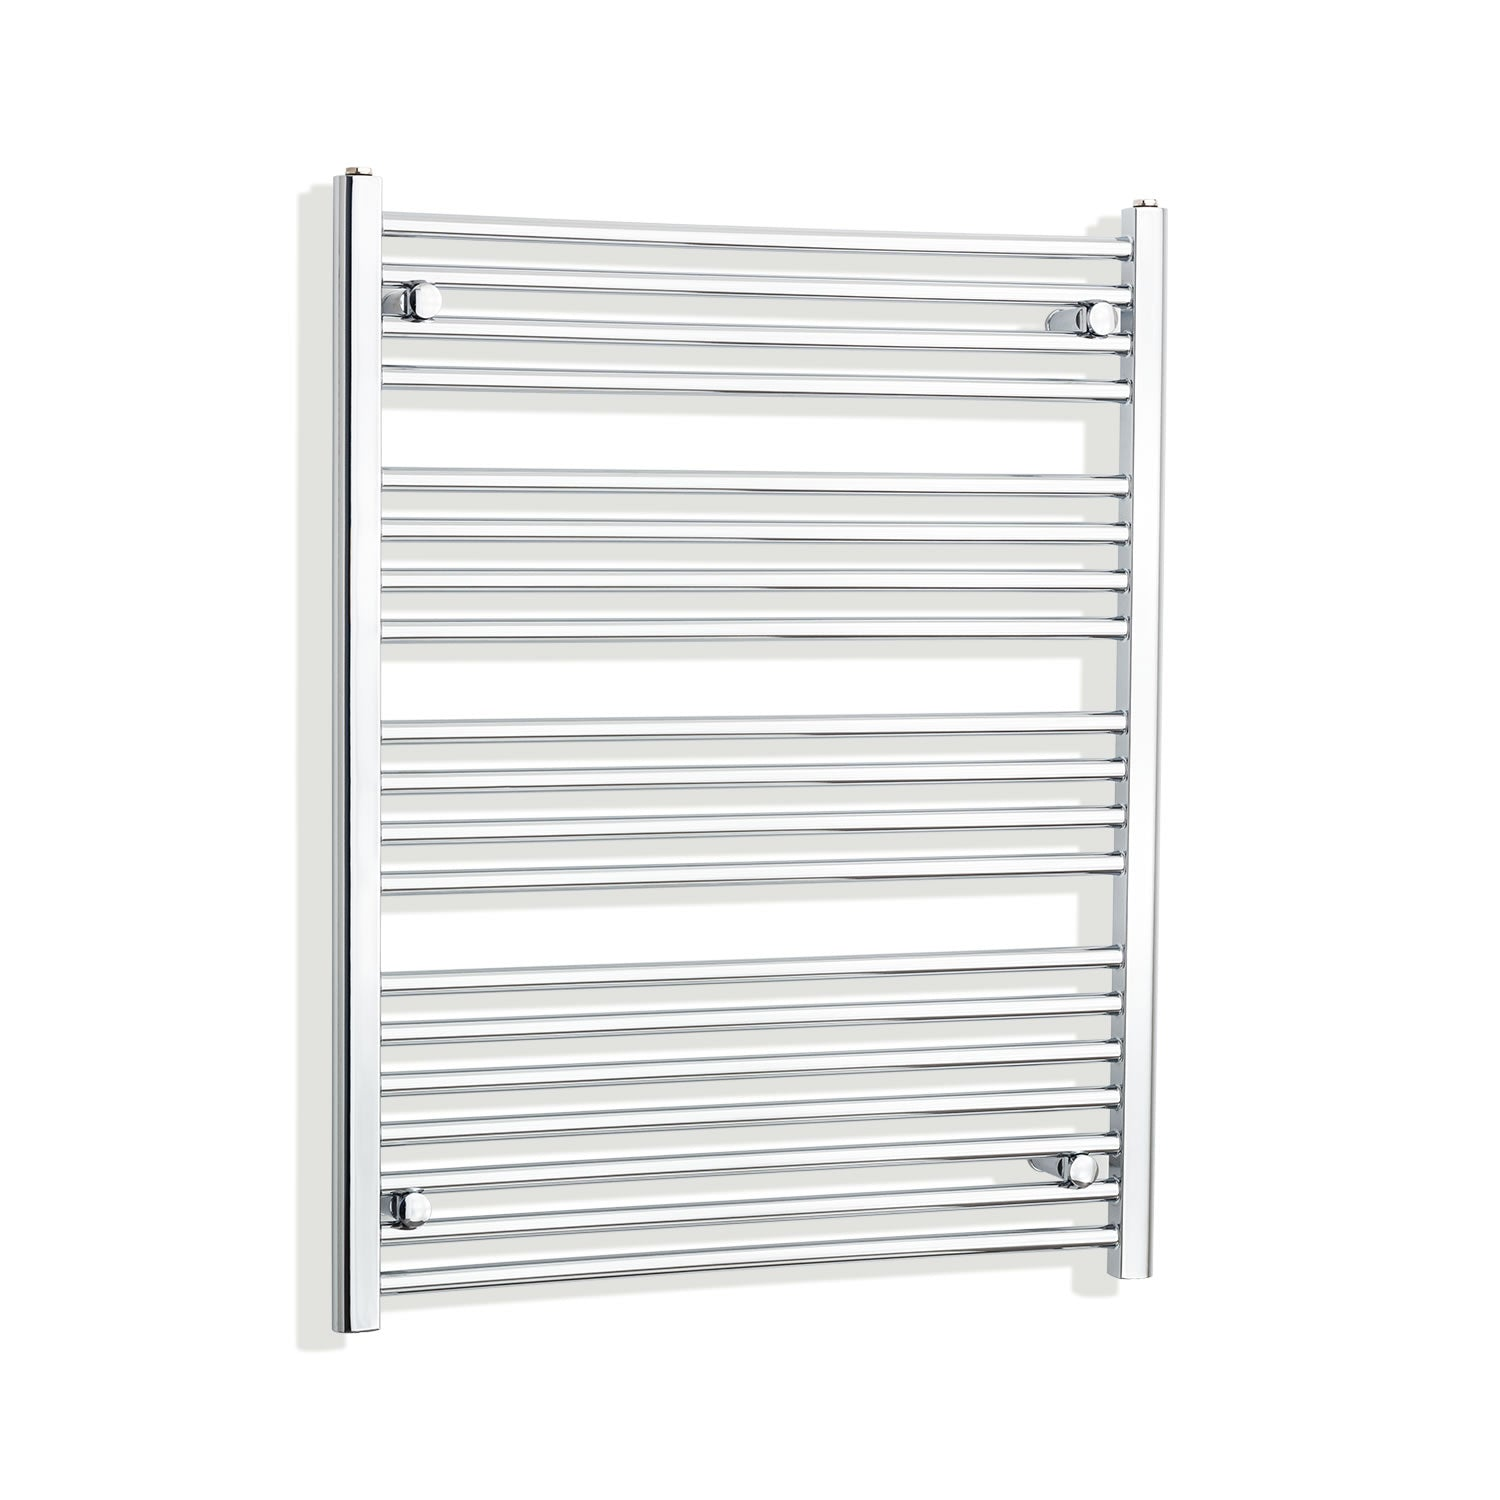 750mm Wide 1000mm High Flat Chrome Heated Towel Rail Radiator HTR,Towel Rail Only